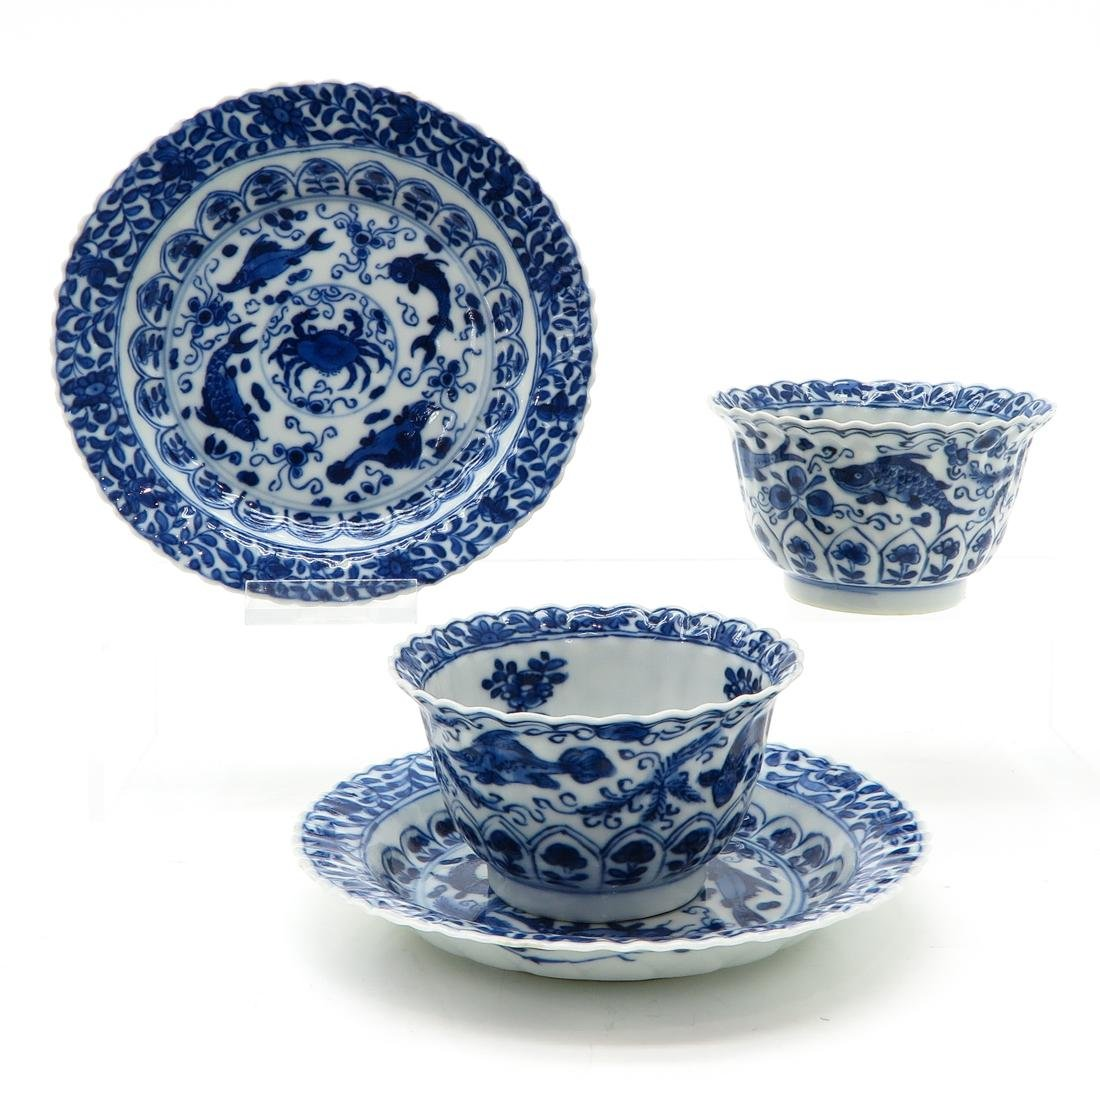 Lot of 2 Cups and Saucers